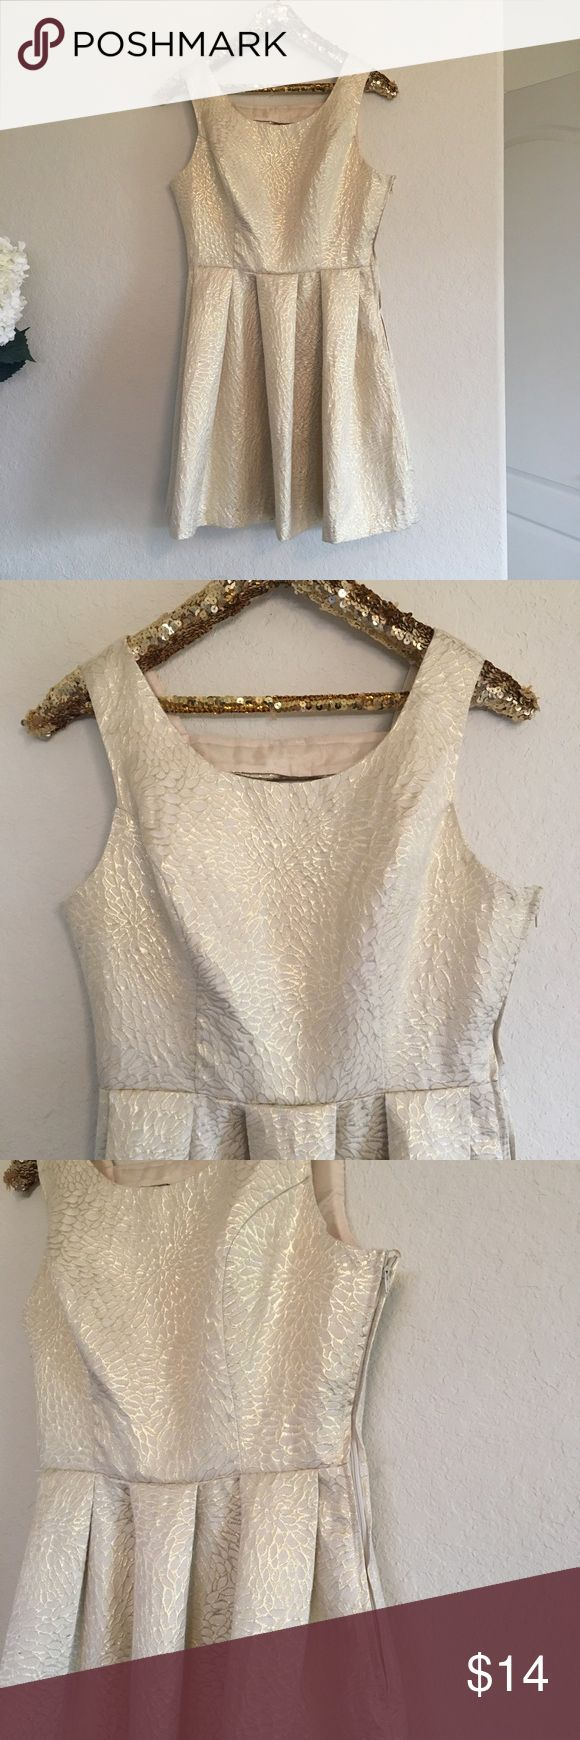 GB Gold Holiday Dress ✨ This beautiful GB holiday dress is in great condition! It's perfect for a Christmas party! ✨ The bows on the back make this dress even cuter! There's a very faint flaw in the print on the back, but only noticeable upon close inspection.  🚭 From a smoke-free home ❌ No trades or off PoshMark sales 🛍 Bundles welcome and encouraged 👌🏻 Reasonable offers welcome ⚡️ Same/next day shipping 🌬 All items are steamed before shipping GB Dresses